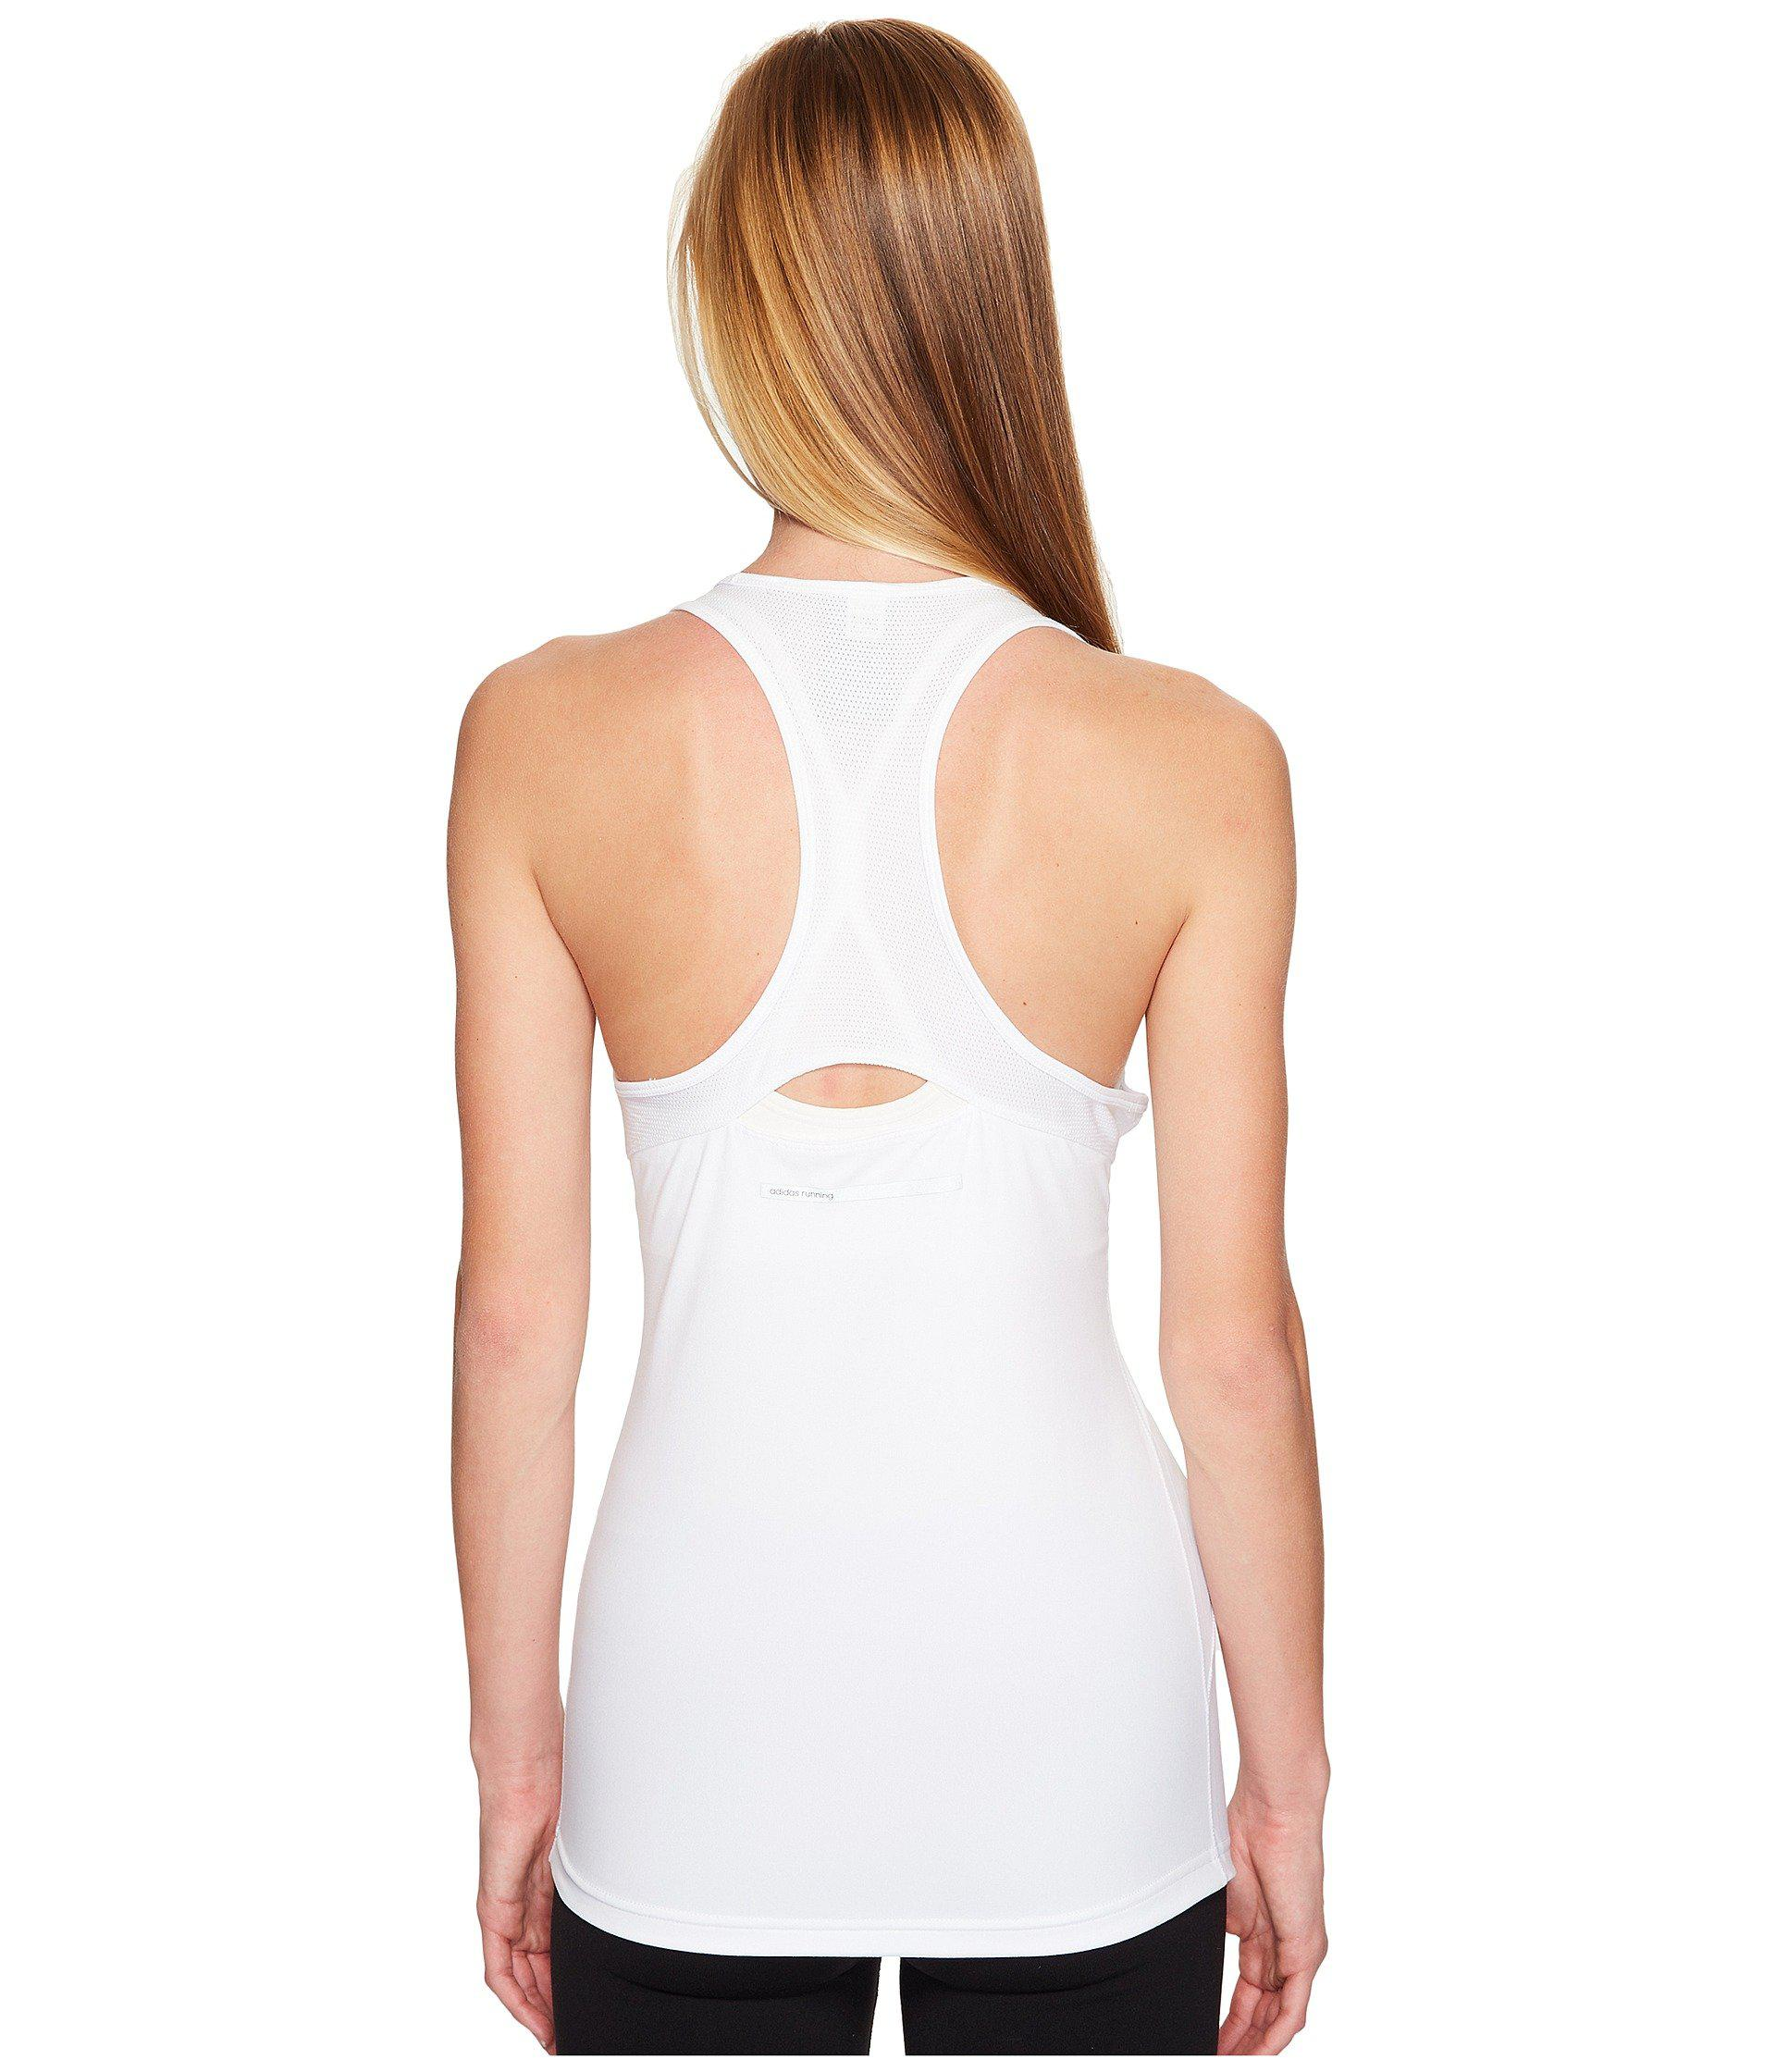 aae4e46a35795 Lyst - Adidas Cross Tank Top in White